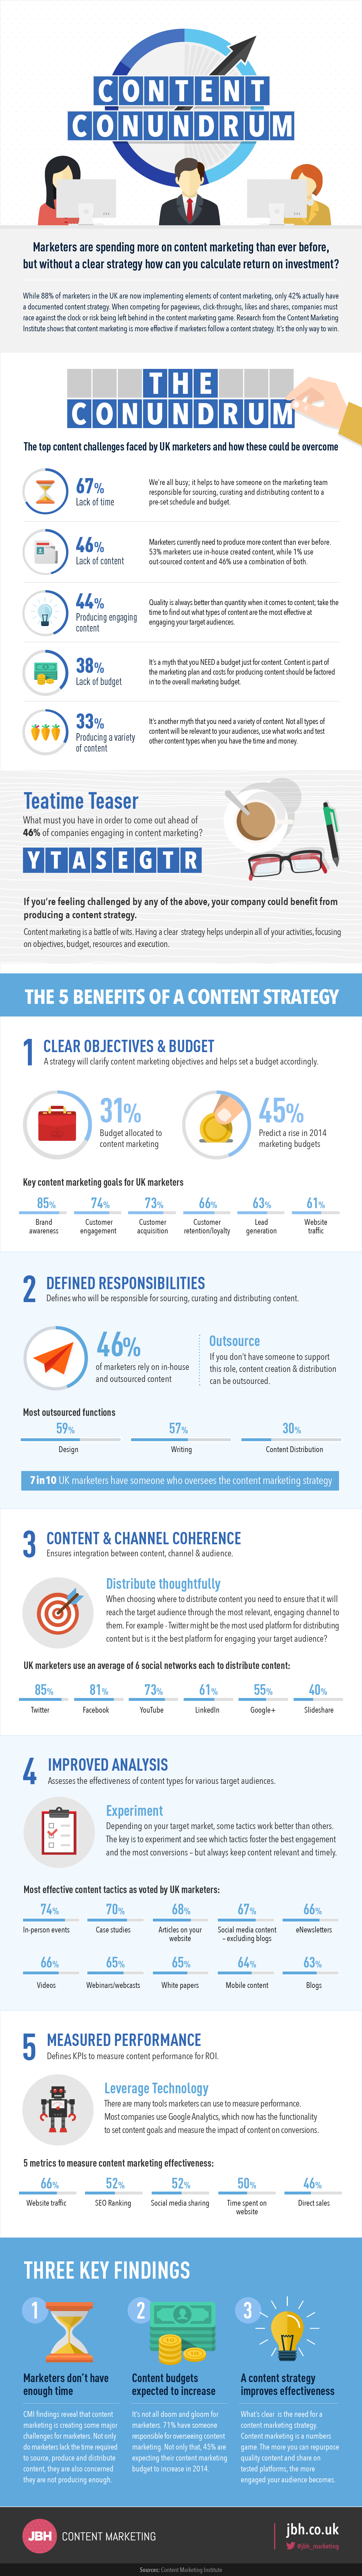 Content marketing is a battle of wits. Having a clear strategy helps underpin all of your activities, focusing on objectives, budget, resources and execution. This infographic outlined the main content marketing challenges and offered guidance on how marketers can overcome them. The Content Conundrum - #infographic #contentmarketing #socialmedia